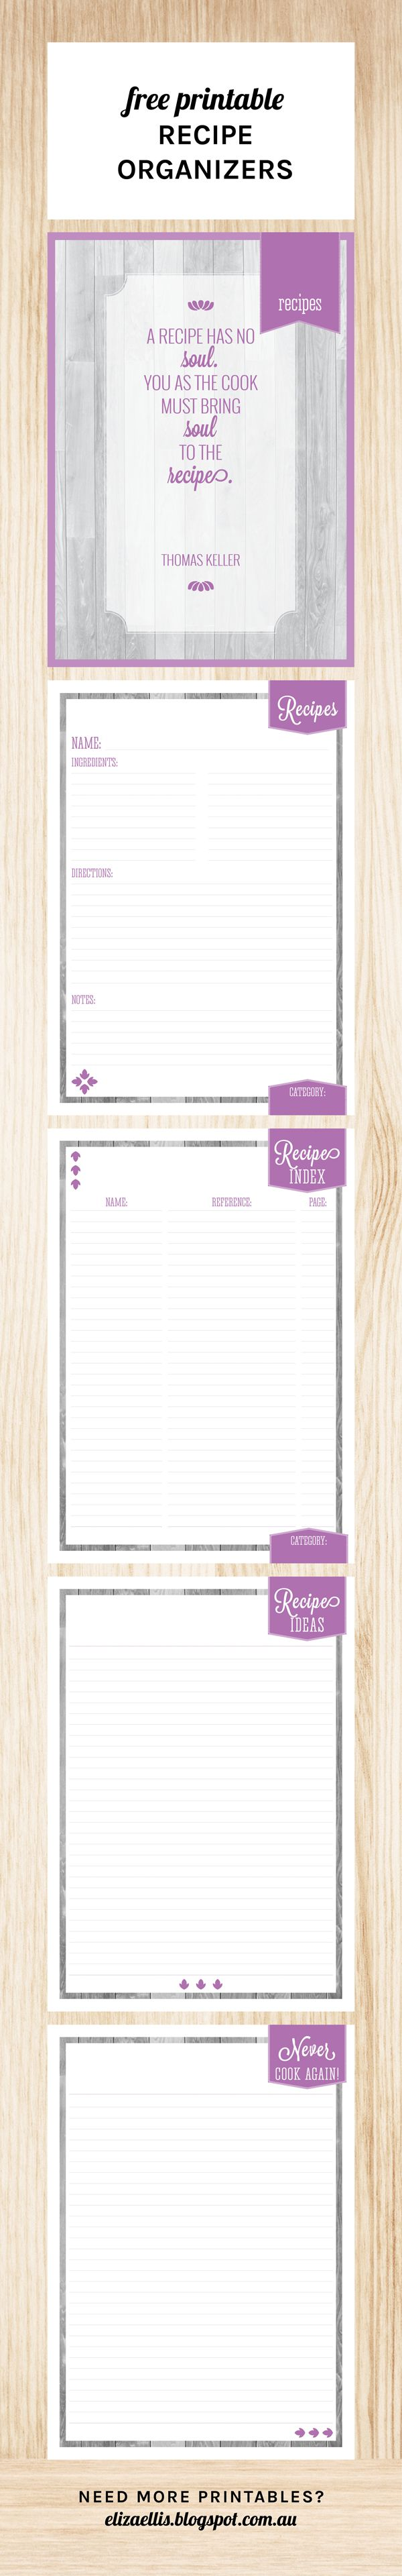 Free Printable Recipe Organizers by Eliza Ellis including recipe page, recipe index, recipe ideas - and a list of things to never cook again! Perfect for your home organizer, home management binder, control journal - and just to get your recipe collection more organized!